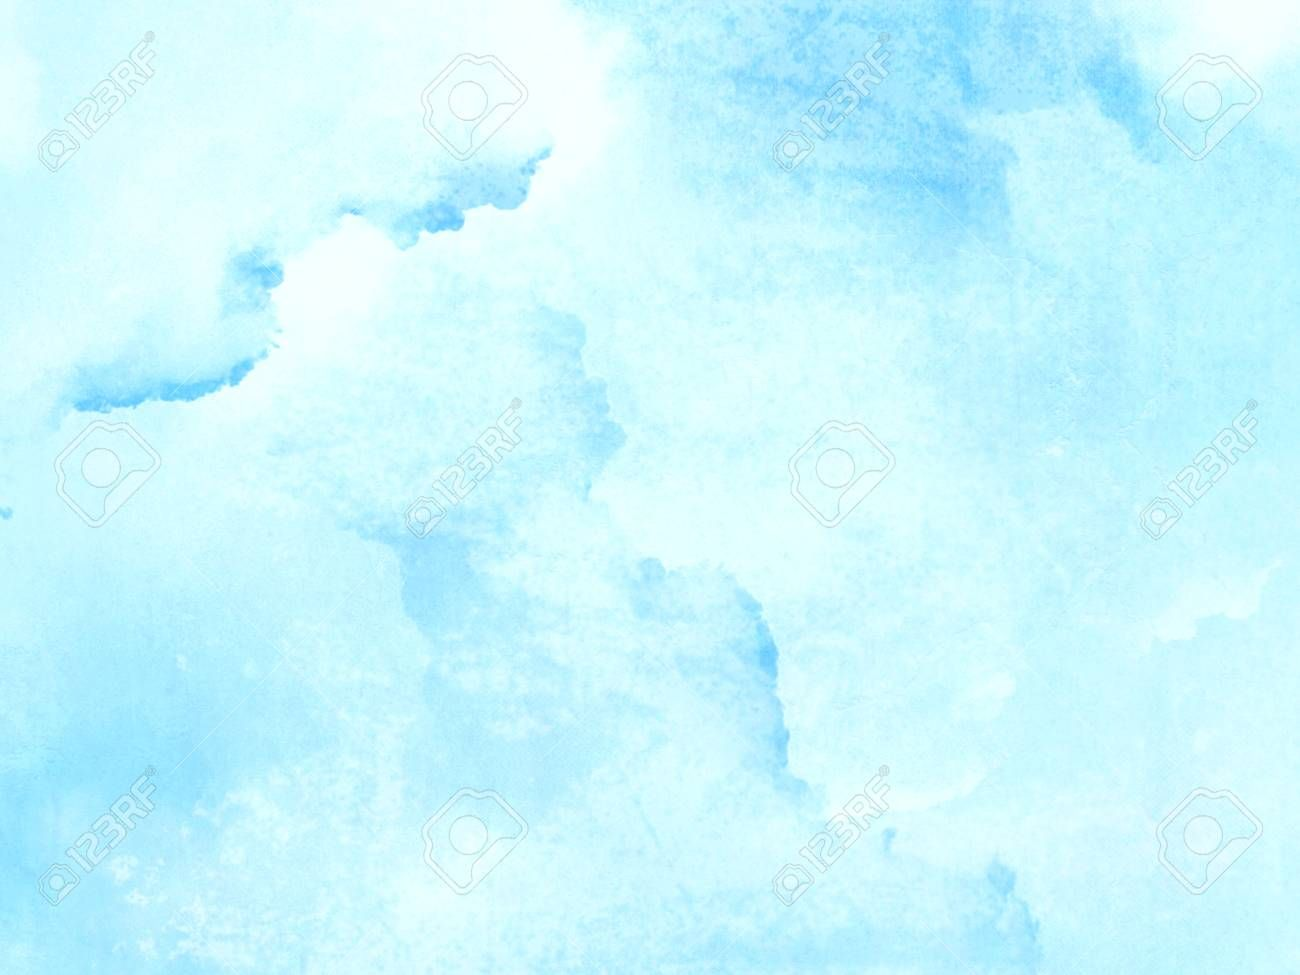 Light Blue Watercolor Background Abstract Paled Texture Stock